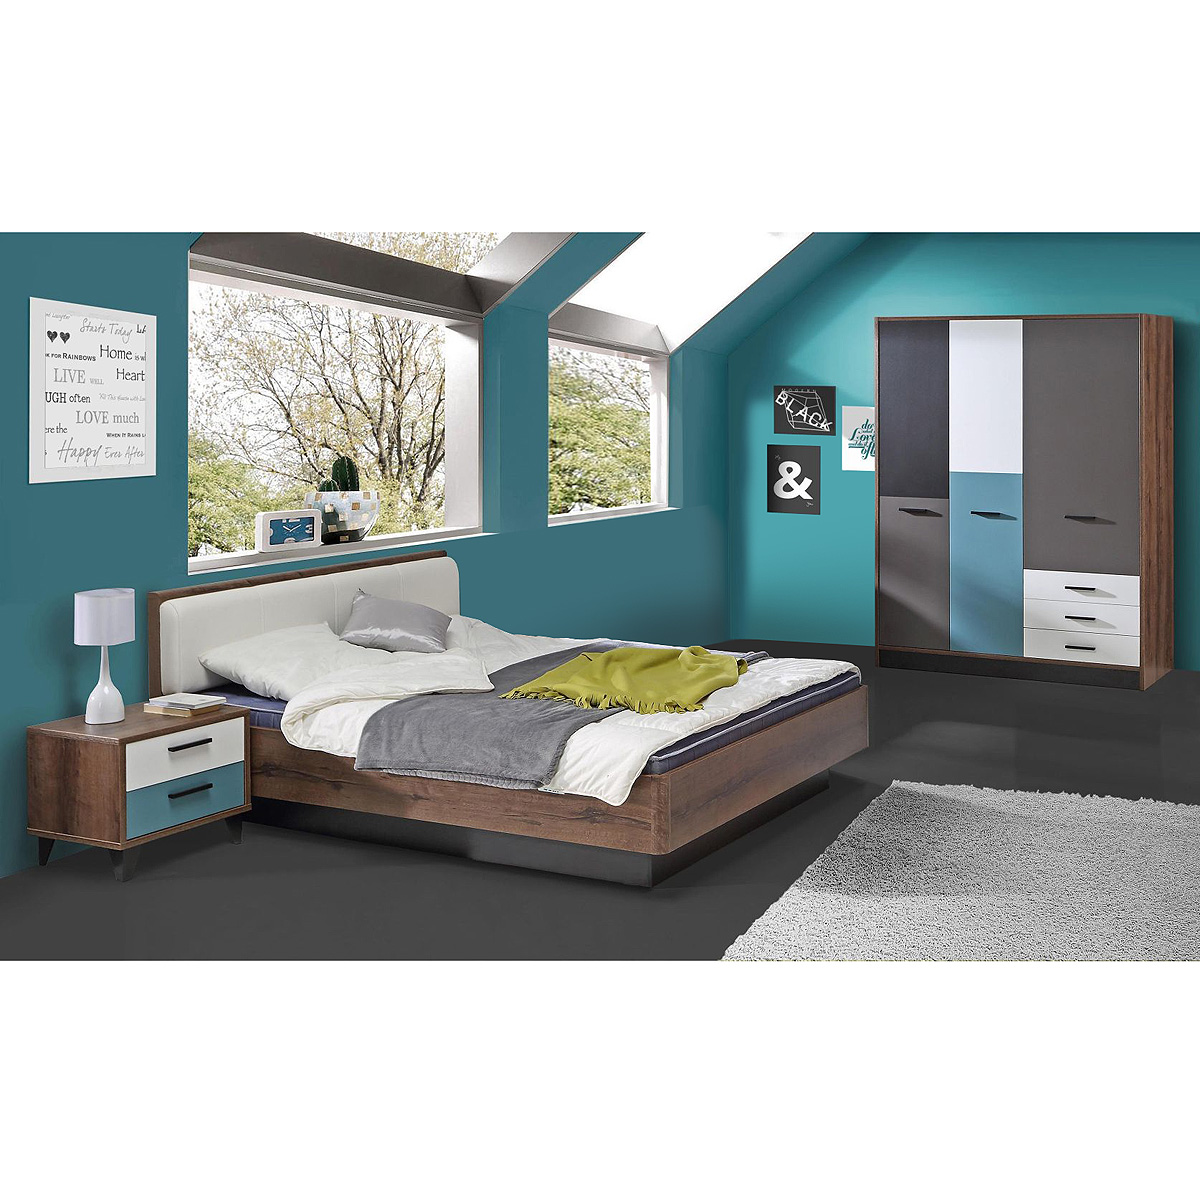 jugendzimmer 2 raven kinderzimmer in schlammeiche wei schwarz gr n grau. Black Bedroom Furniture Sets. Home Design Ideas